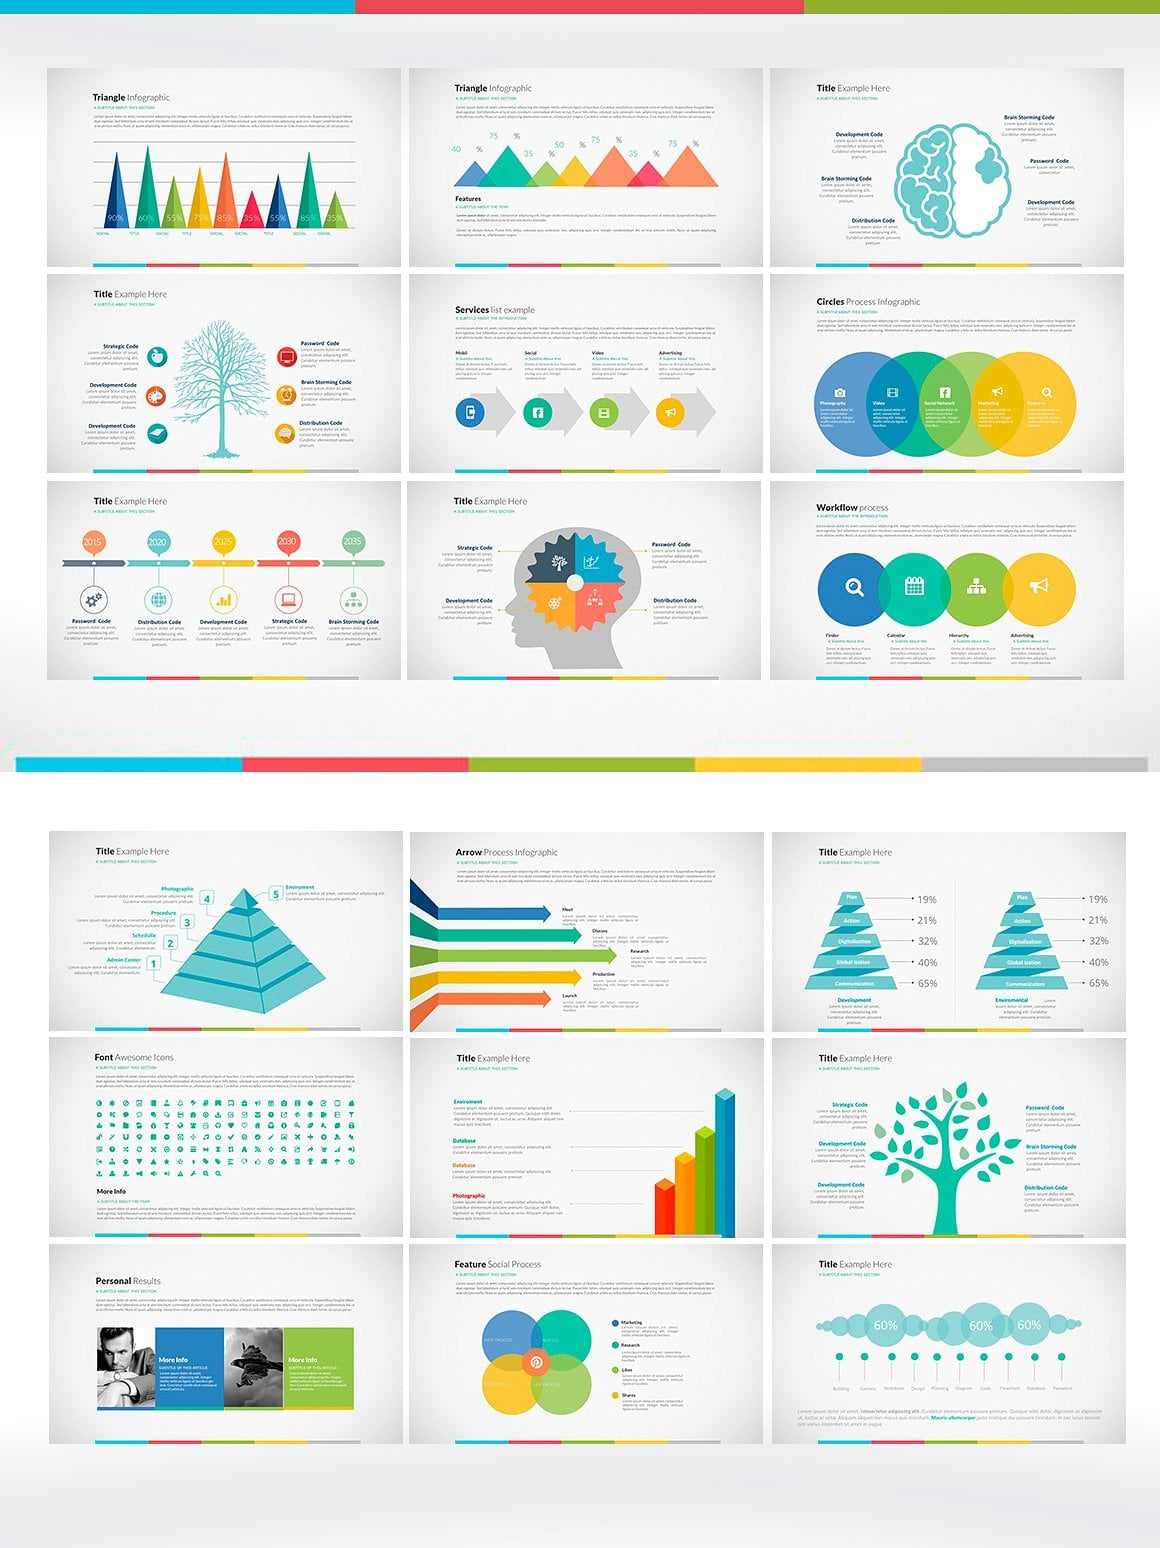 20 Powerpoint Templates with 81% OFF - Big Pitch 03